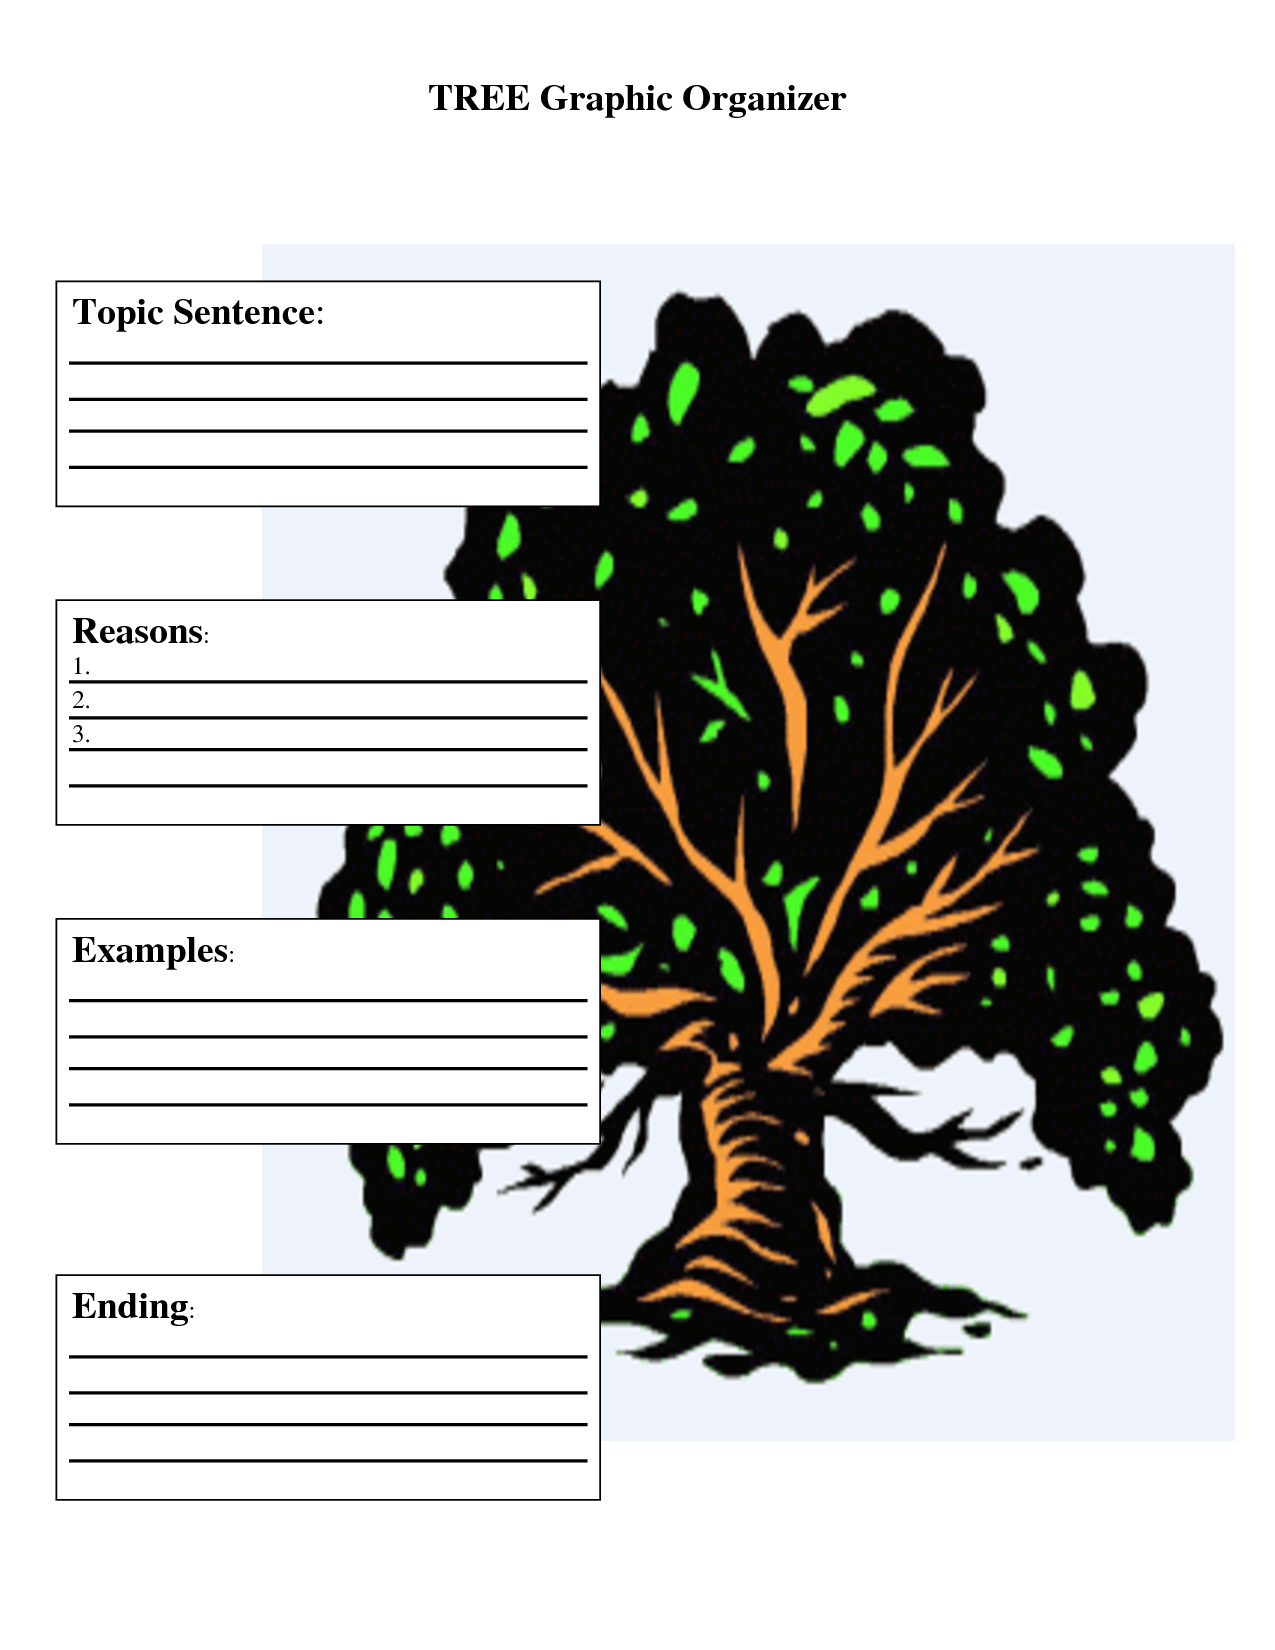 tree graphic organizer template 7 best images of timeline graphic